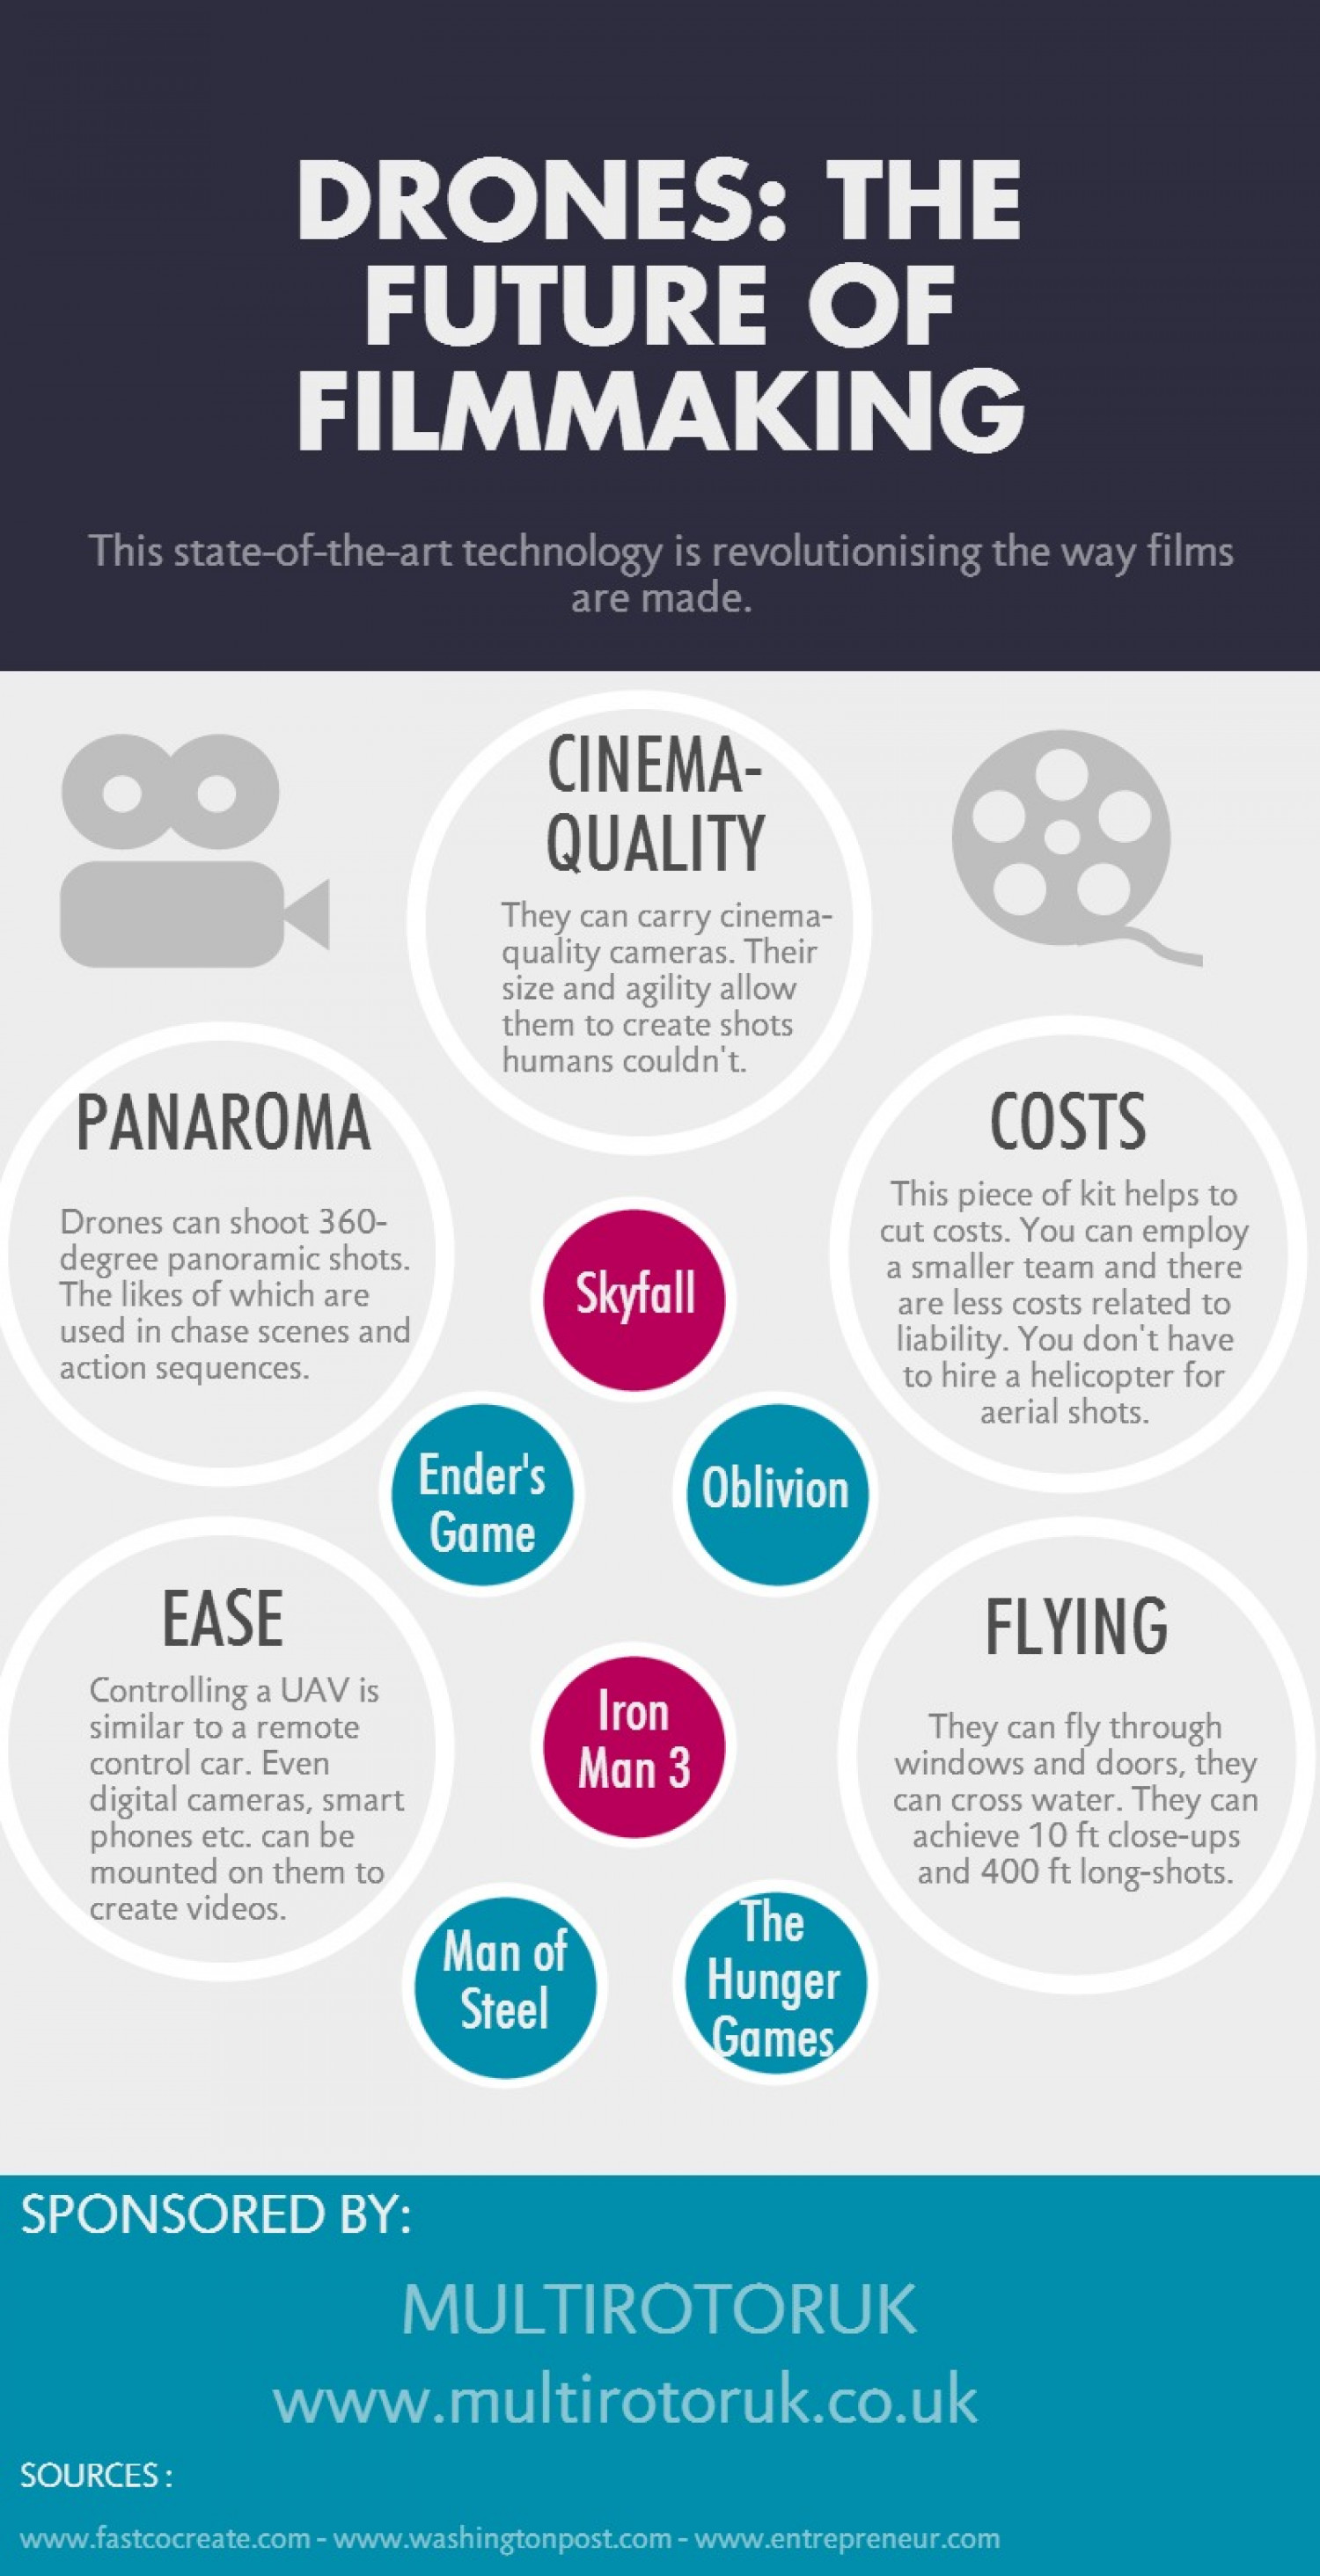 Drones: The Future of Filmmaking Infographic